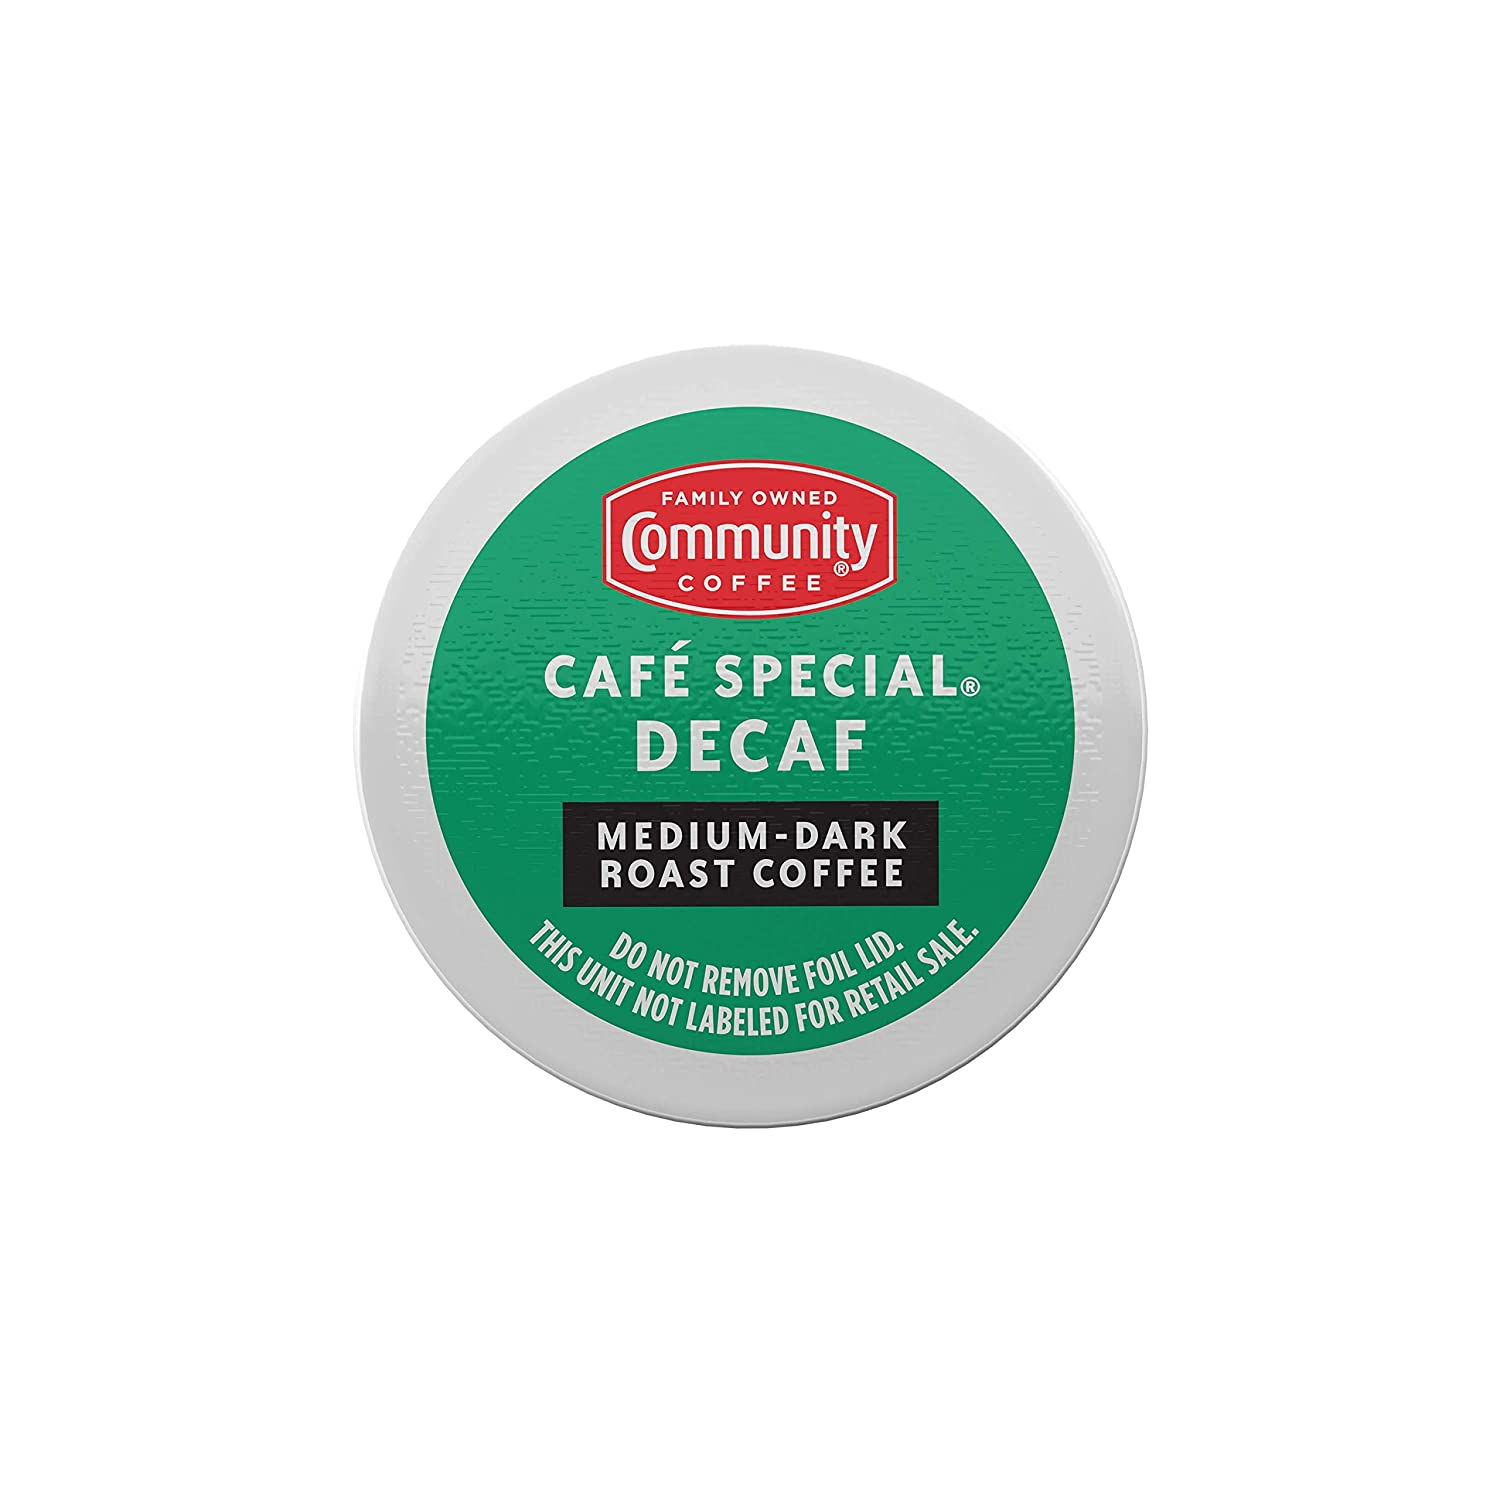 Community Coffee Cafe Special Decaf Single Serve Pods, Compatible with Keurig 2.0 K Cup Brewers, 24Count (Pack Of 4), Café Special Decaf, 96Count